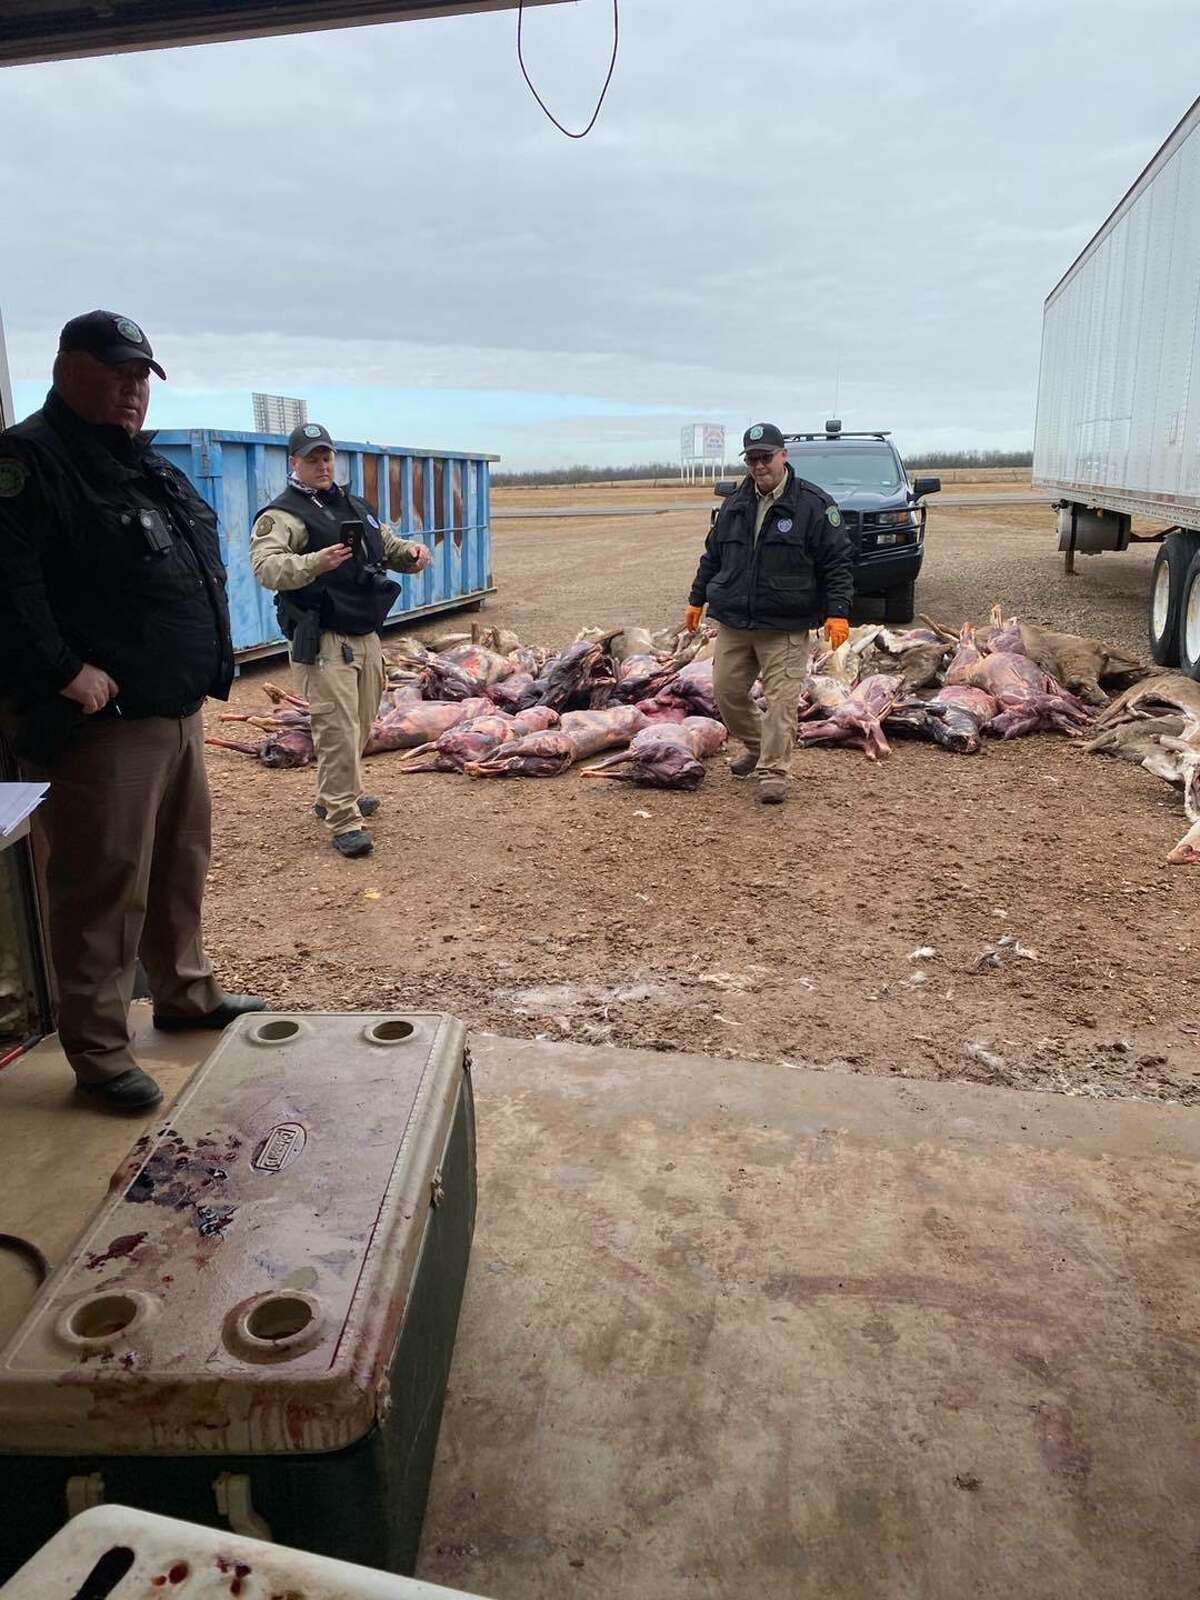 On Saturday, Texas Game Wardens found 80 white-tailed deer carcasses unfit for human consumption in coolers at a meat processing facility in Wichita County.